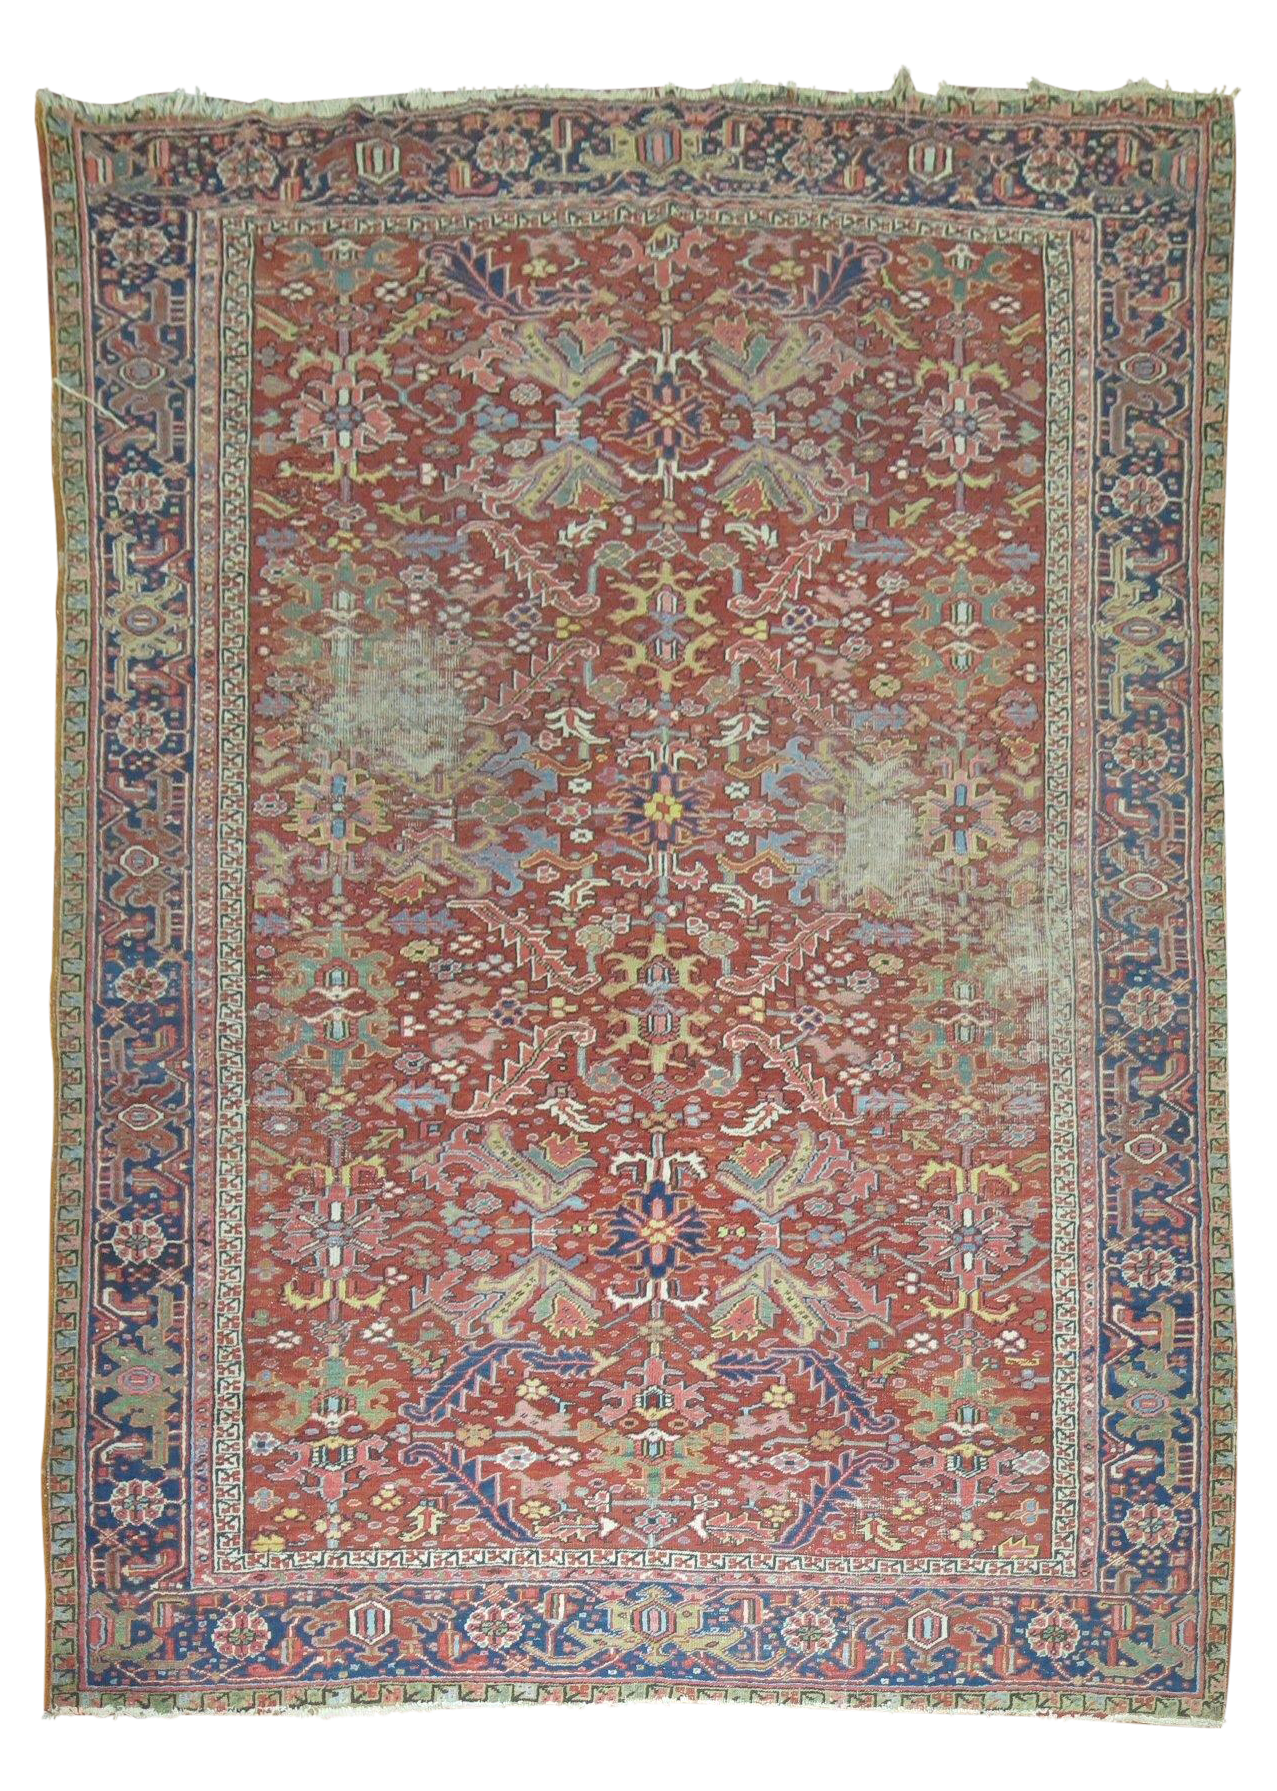 Distressed Persian Heriz Rug - 7'3'' X 10'6'' on Chairish.com